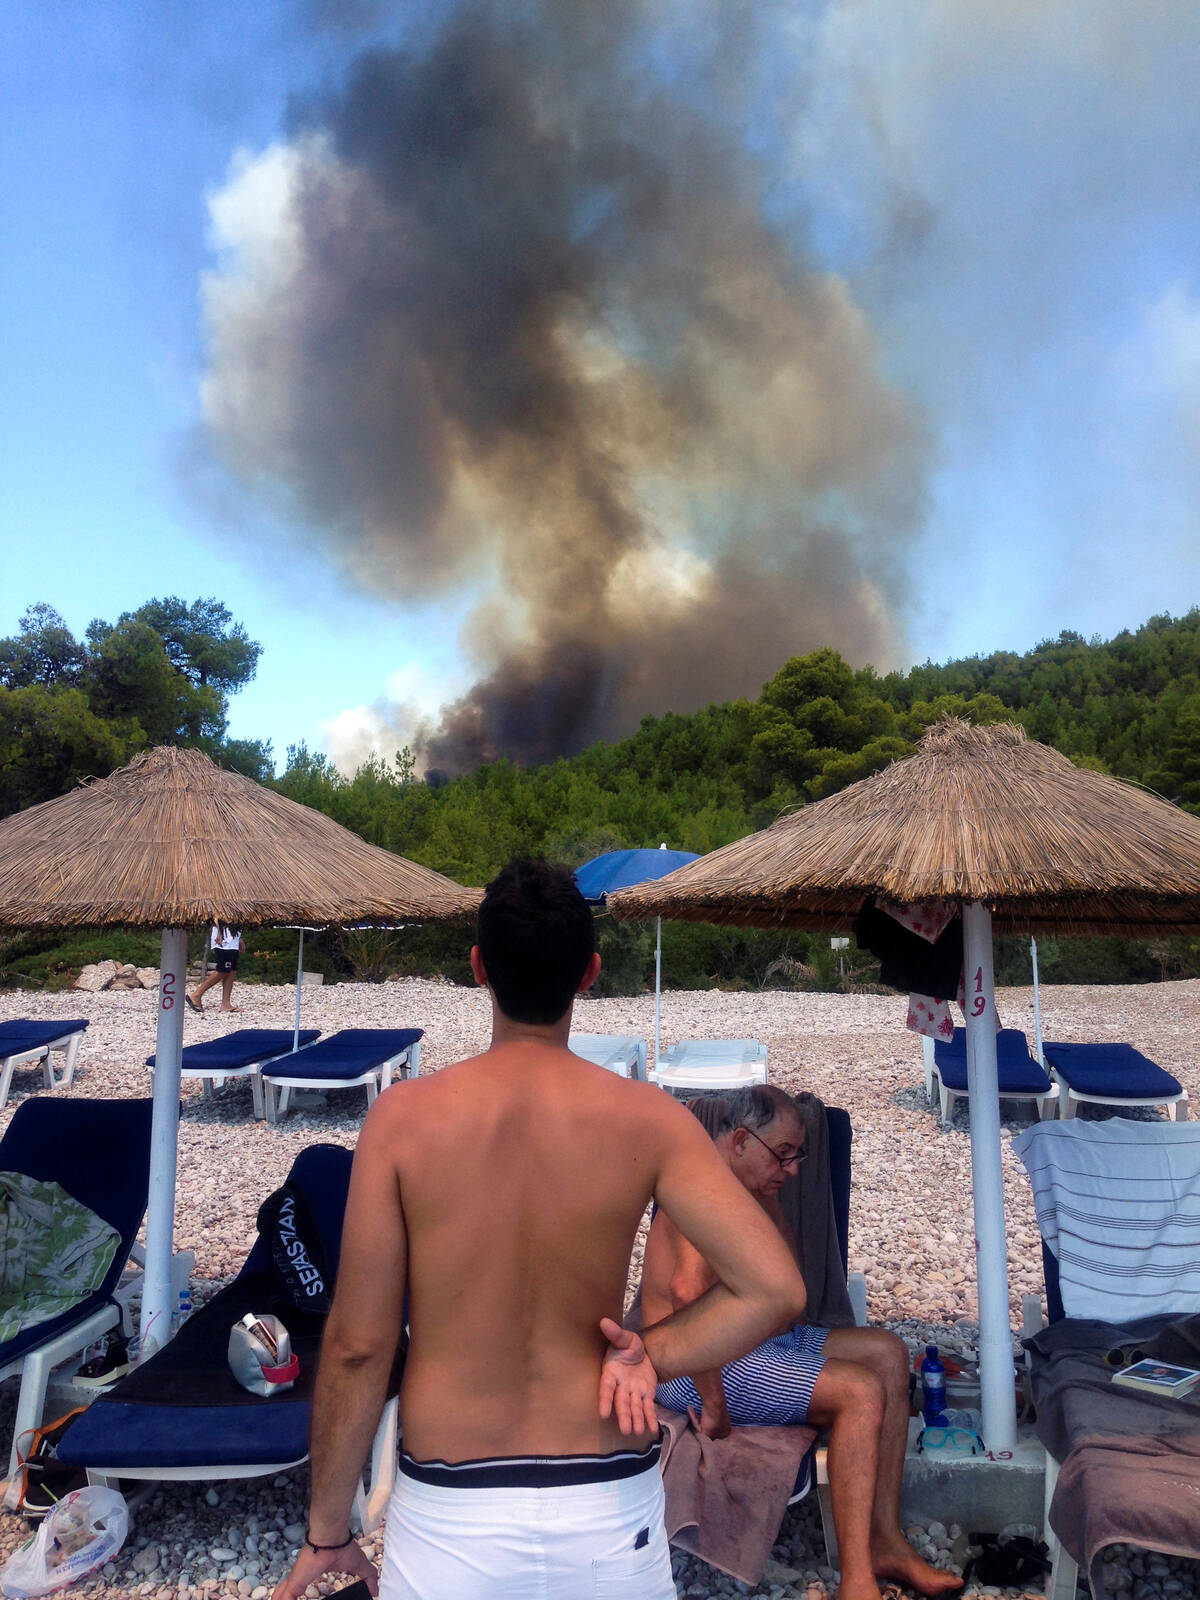 2017-08-01T115907Z 683980130 RC1AFDE79510 RTRMADP 3 GREECE-WILDFIRE